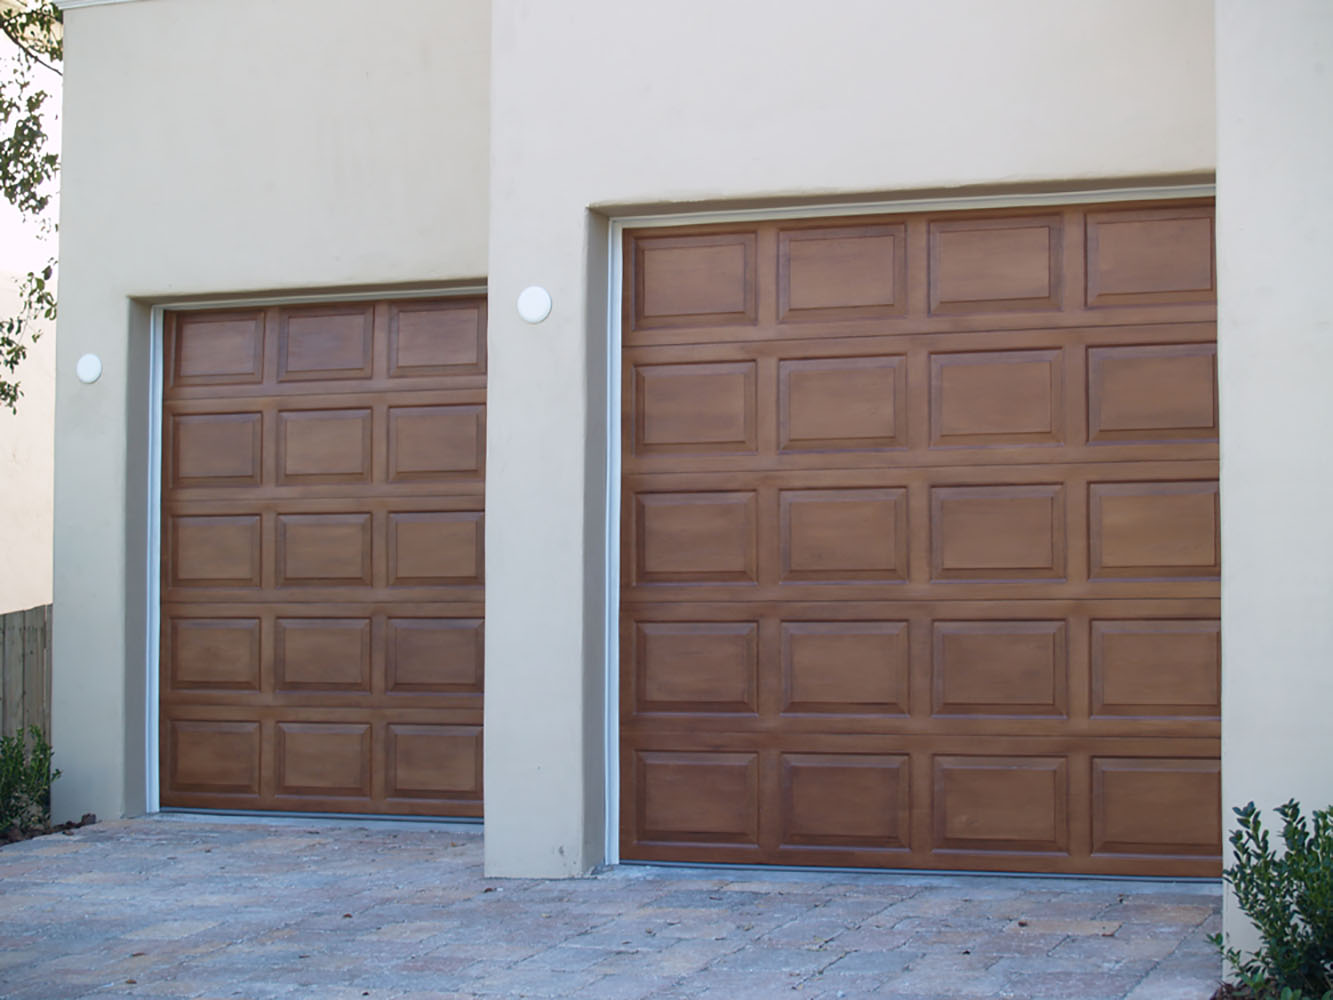 1000 #476178 Garage Doors Windows Doors Columns And More picture/photo Overhead Doors Tampa 35791333